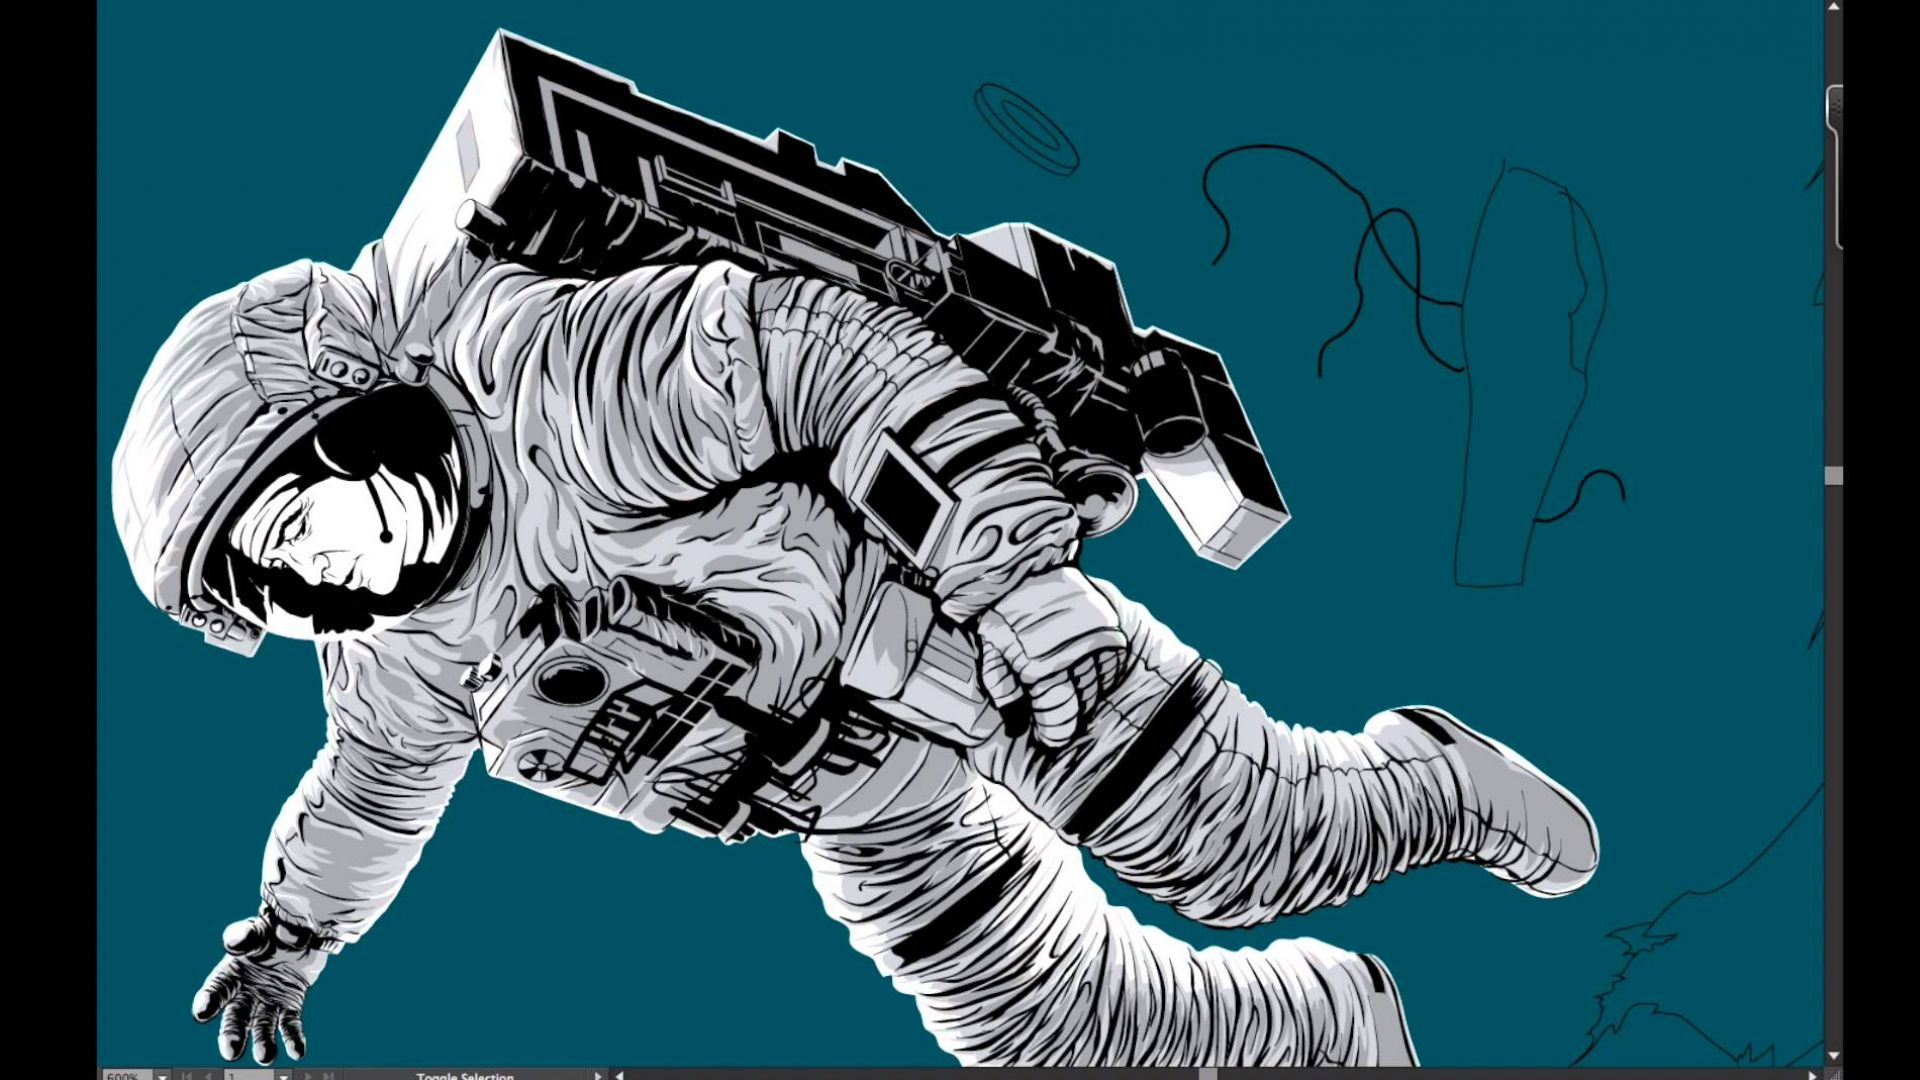 Creating the Gravity poster